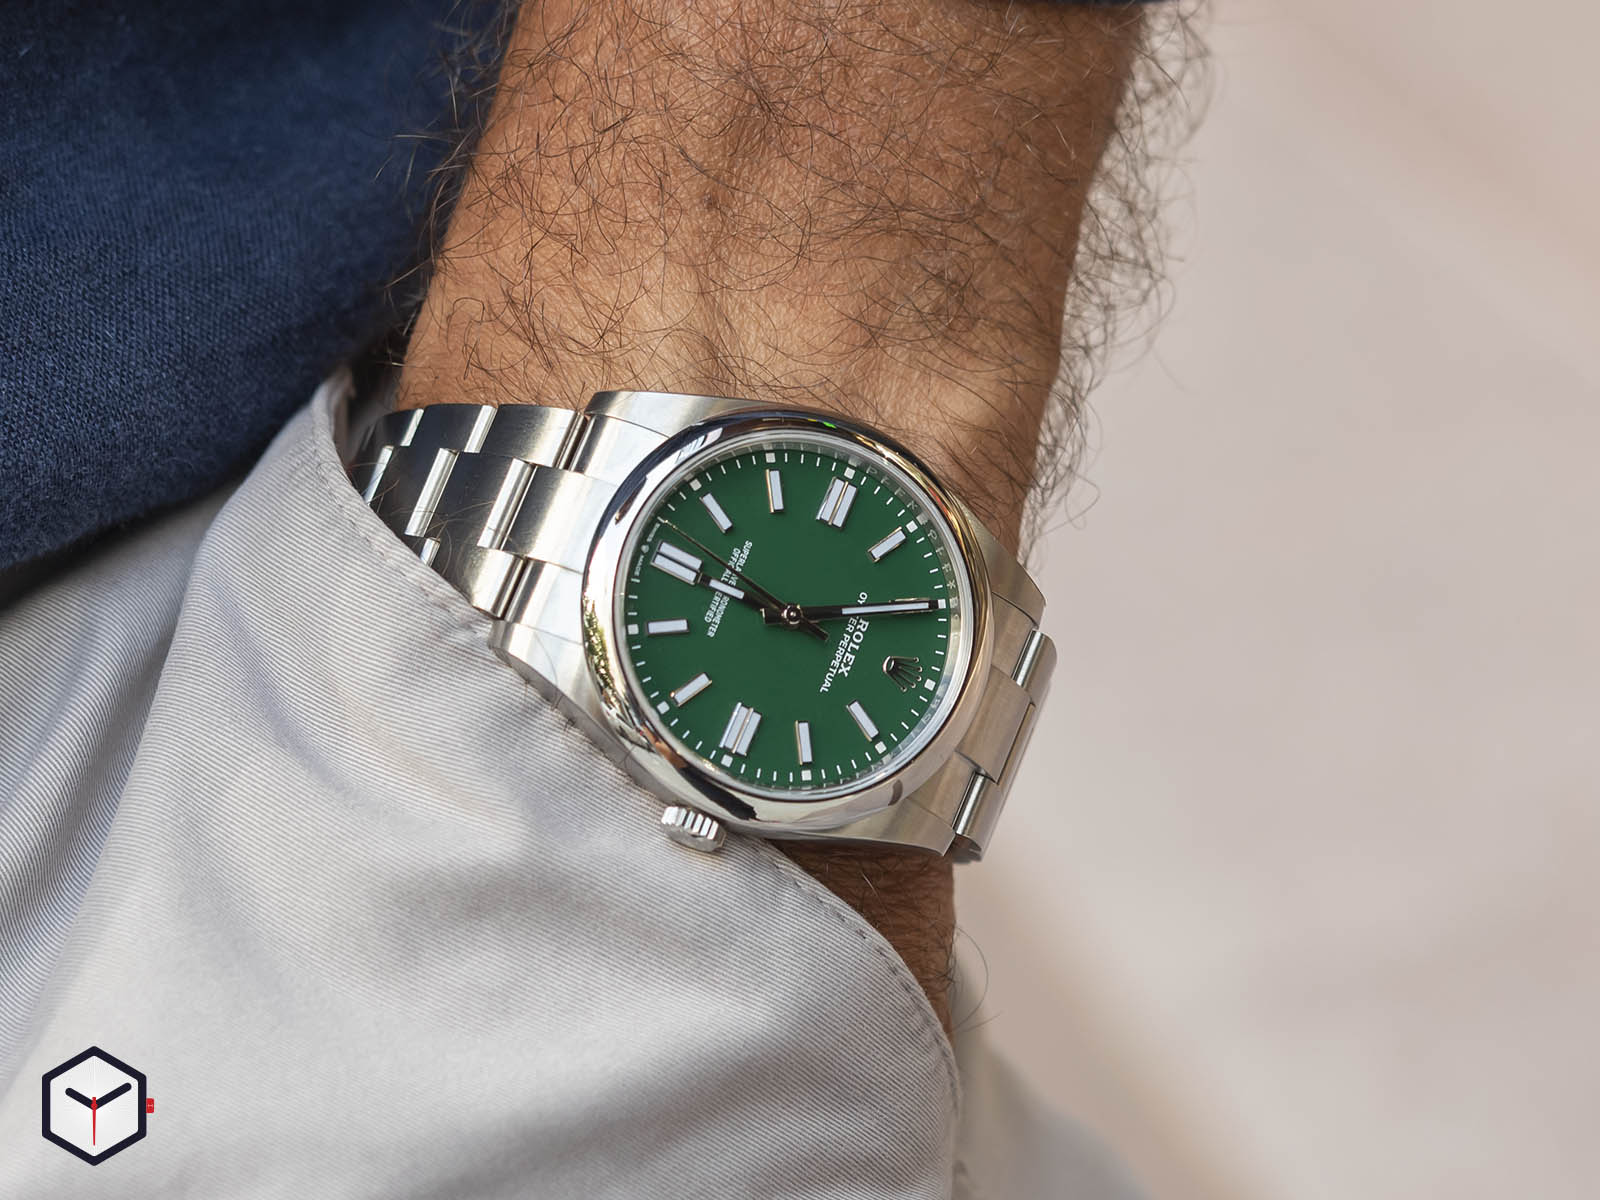 rolex-oyster-perpetual-36mm-2020-13.jpg